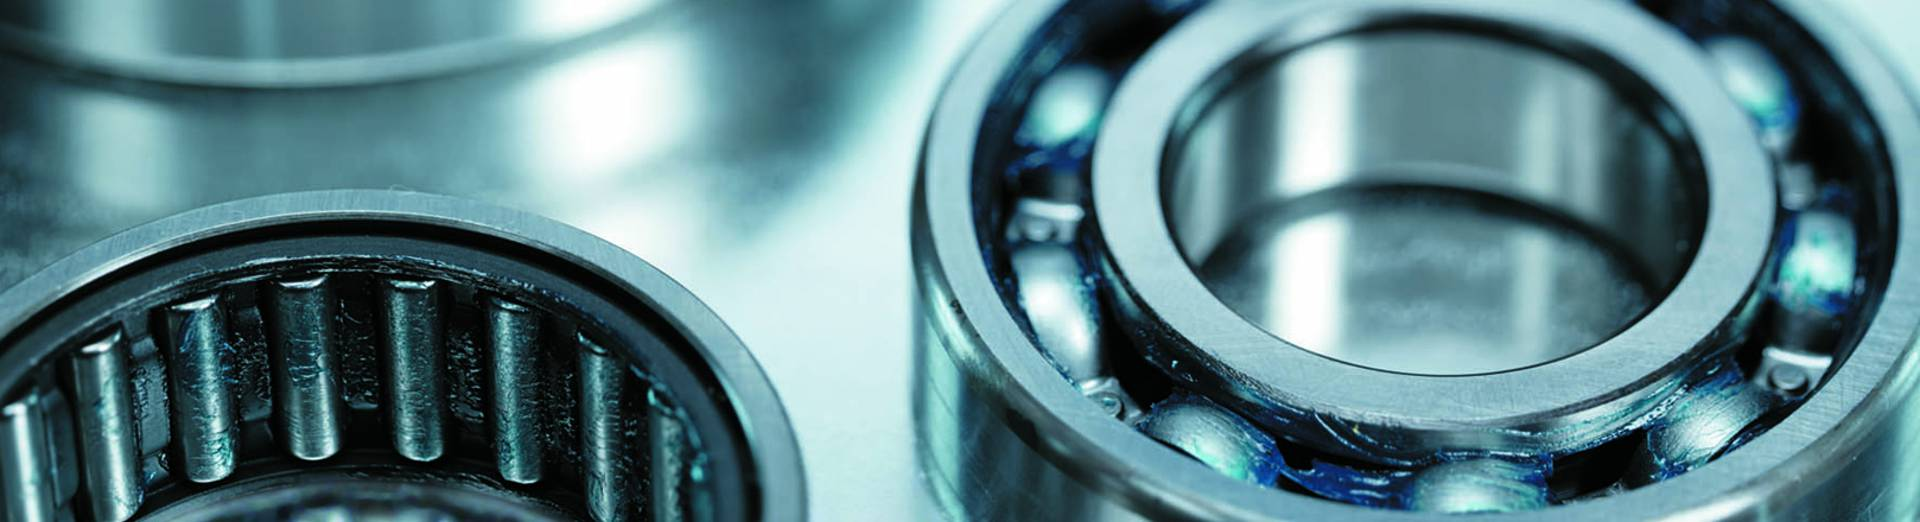 Lubricating Greases | FUCHS LUBRICANTS SOUTH AFRICA